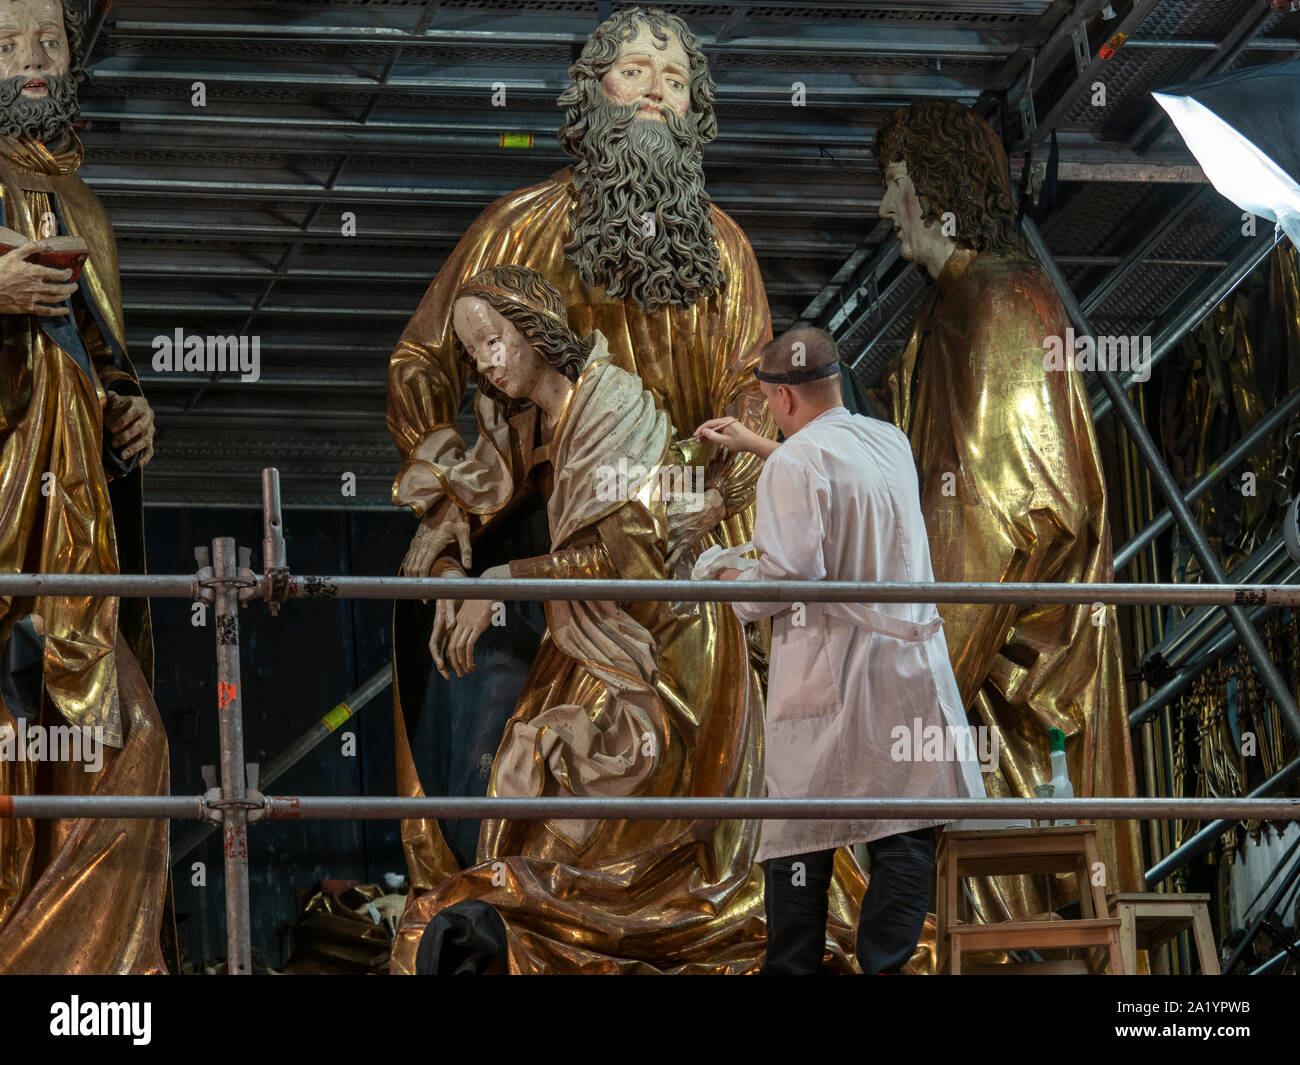 Krakow, Poland - 23rd Sep 2019: A man working on the renovation of the Altar of Veit Stoss in St. Mary's Basilica in Krakow, Poland. Stock Photo